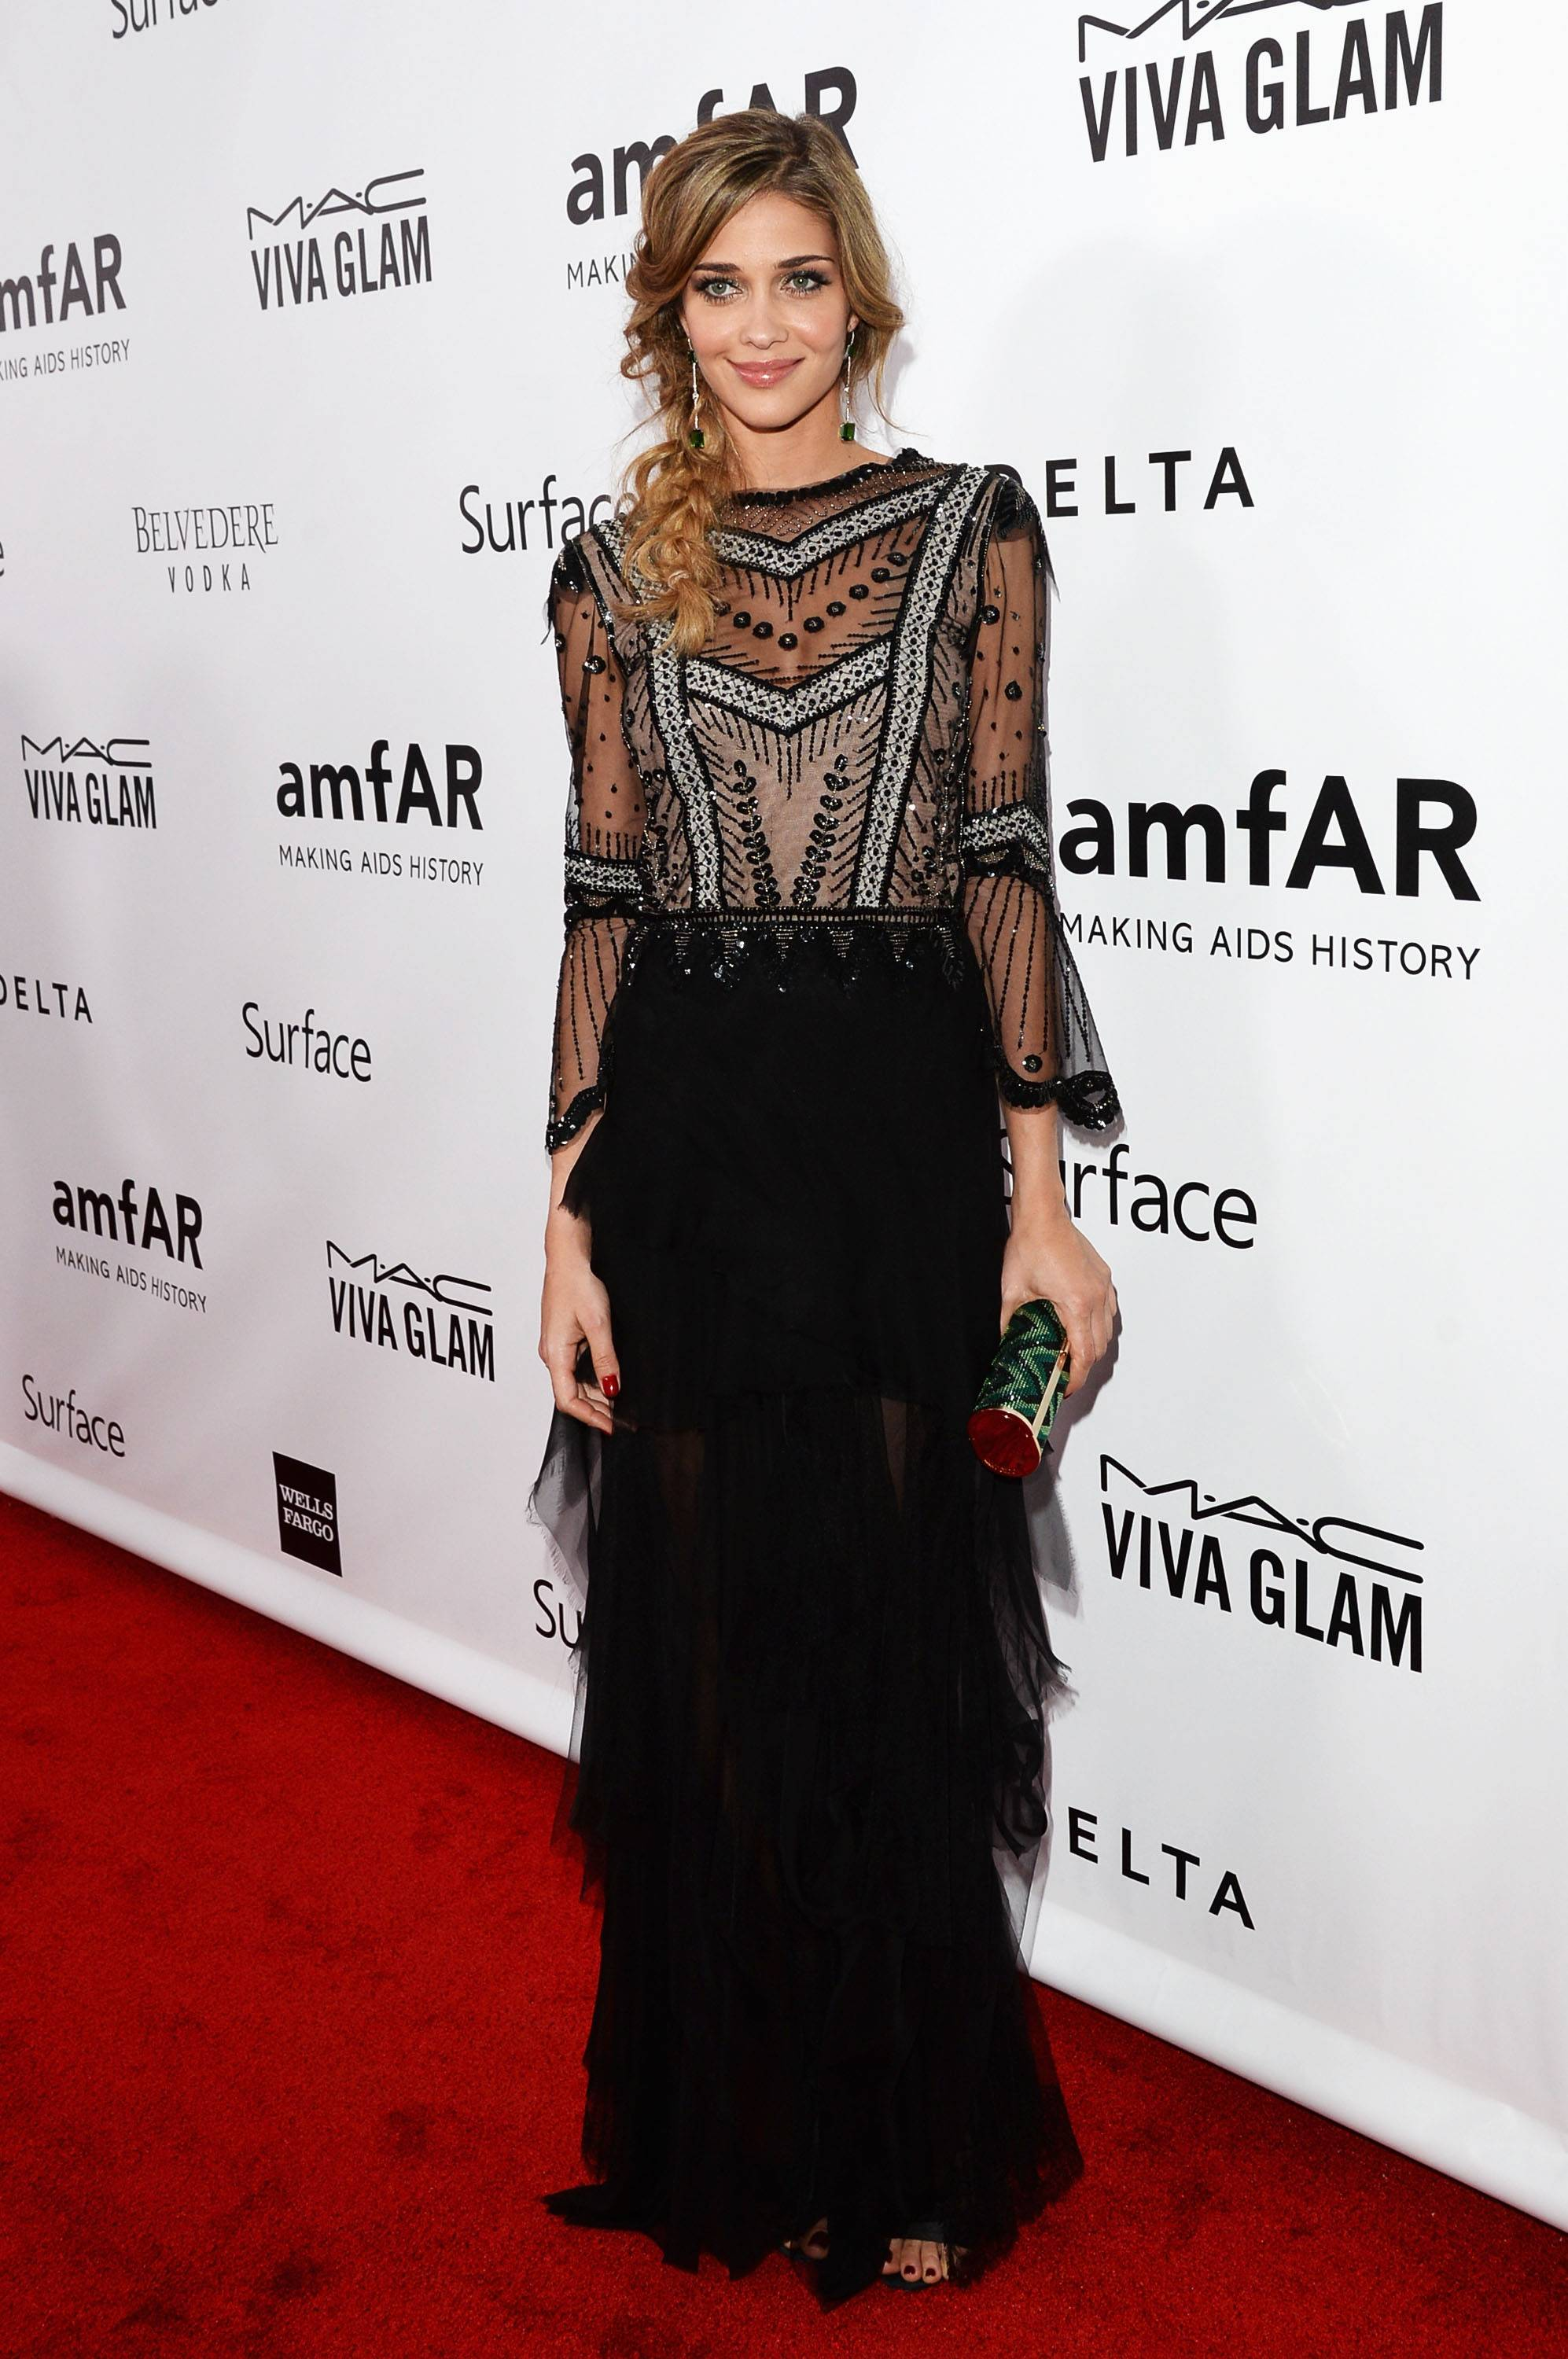 2013 amfAR Inspiration Gala Los Angeles Presented By MAC Viva Glam - Red Carpet